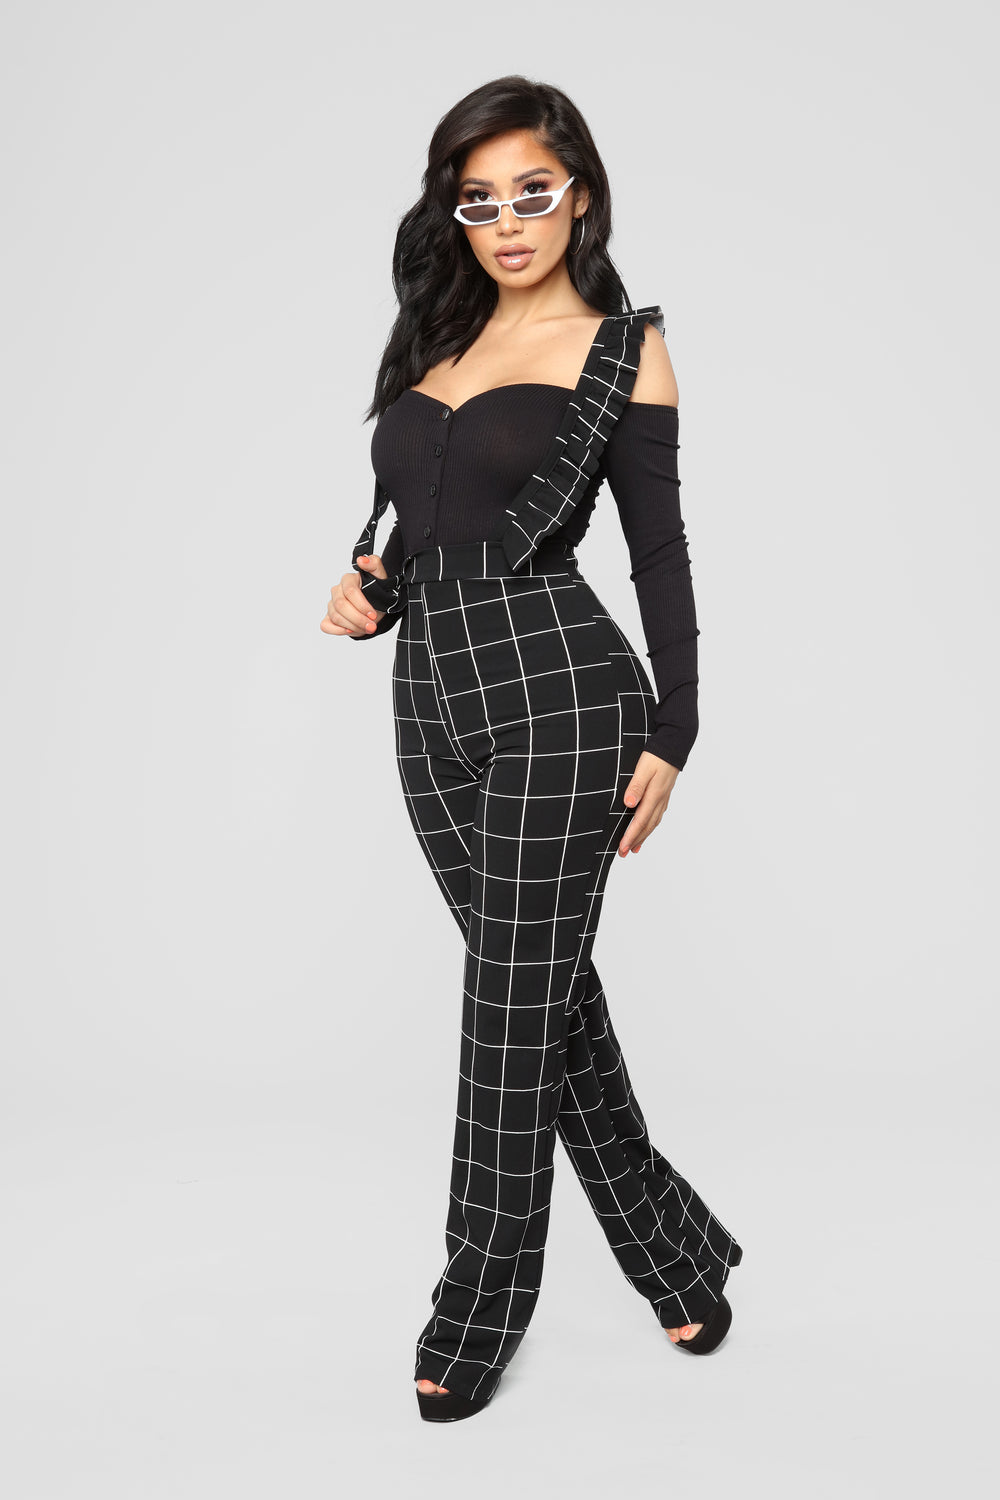 She's All Talk Overall Jumpsuit - Black